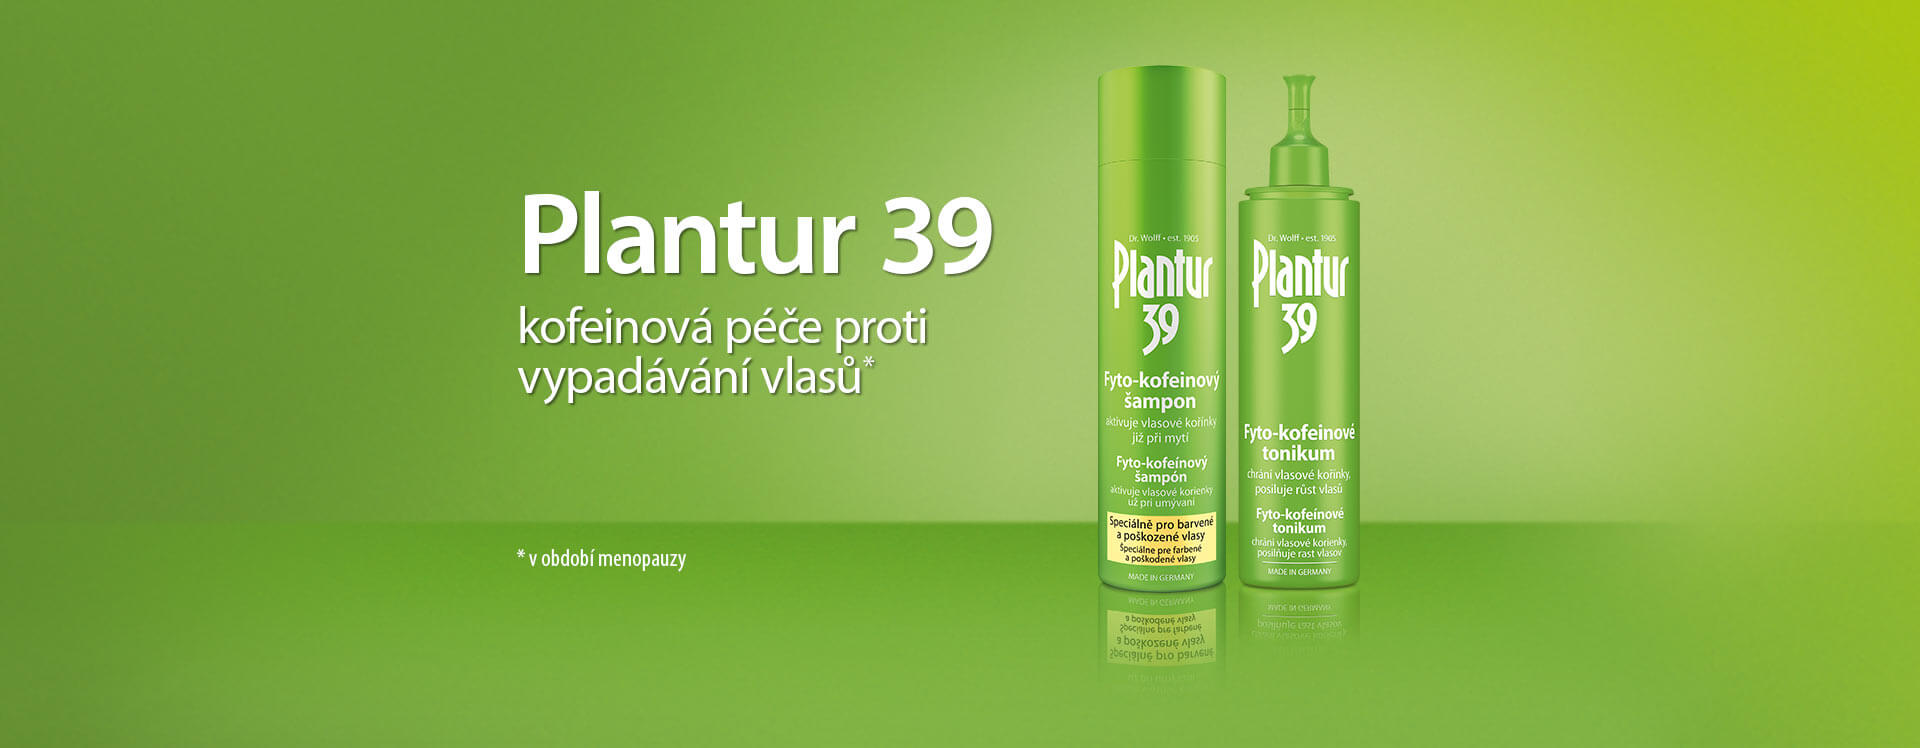 plantur39-slider-phyto-caffeine-treatment-czech-republic-cz